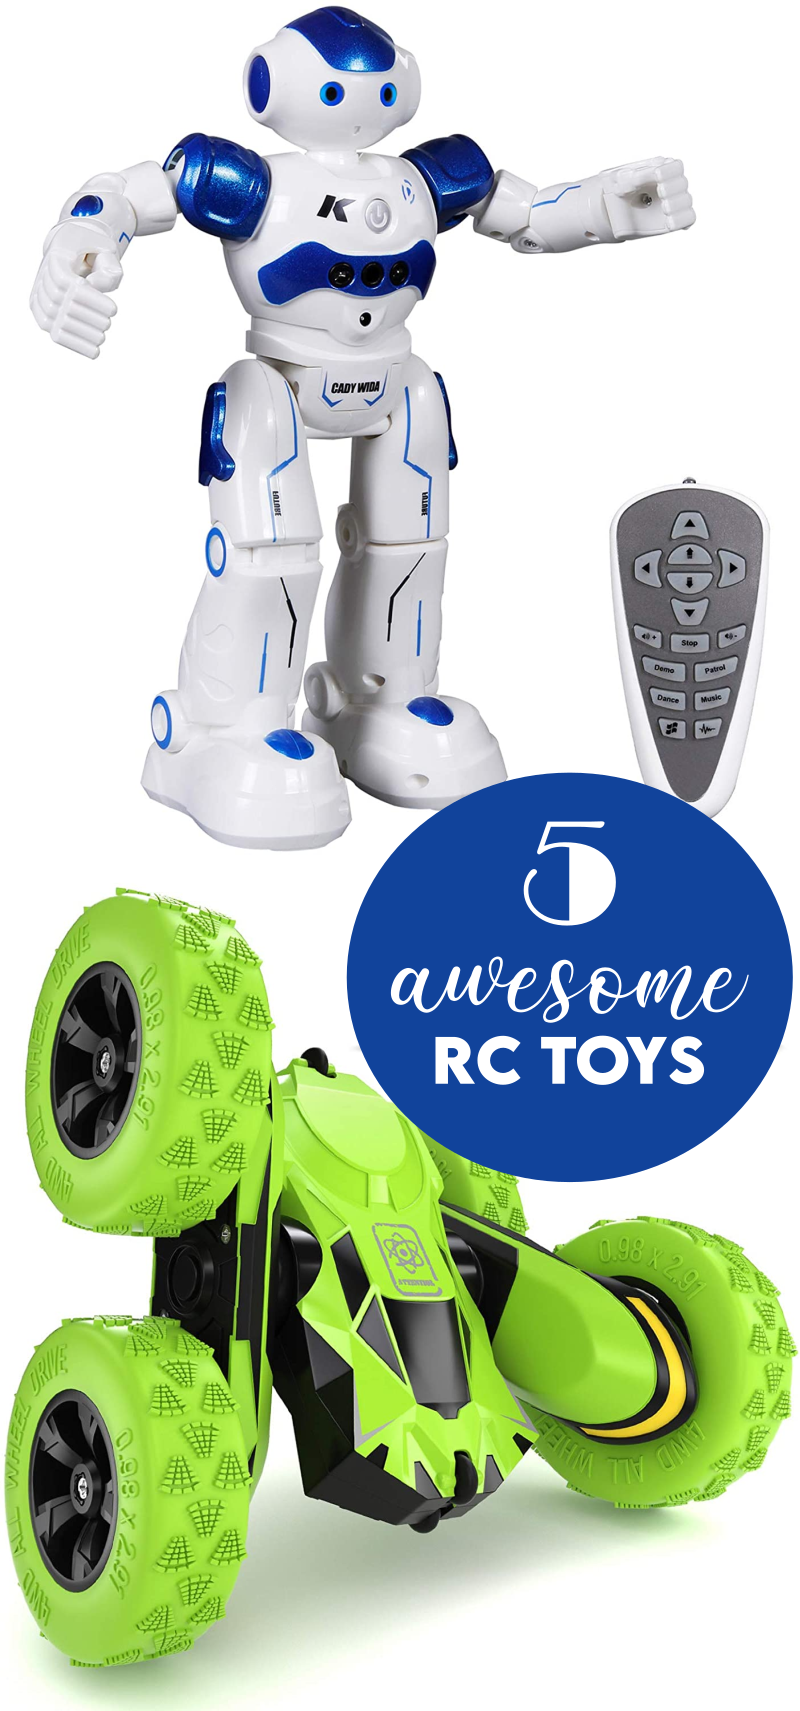 5 Awesome RC Toys for the Holiday Season